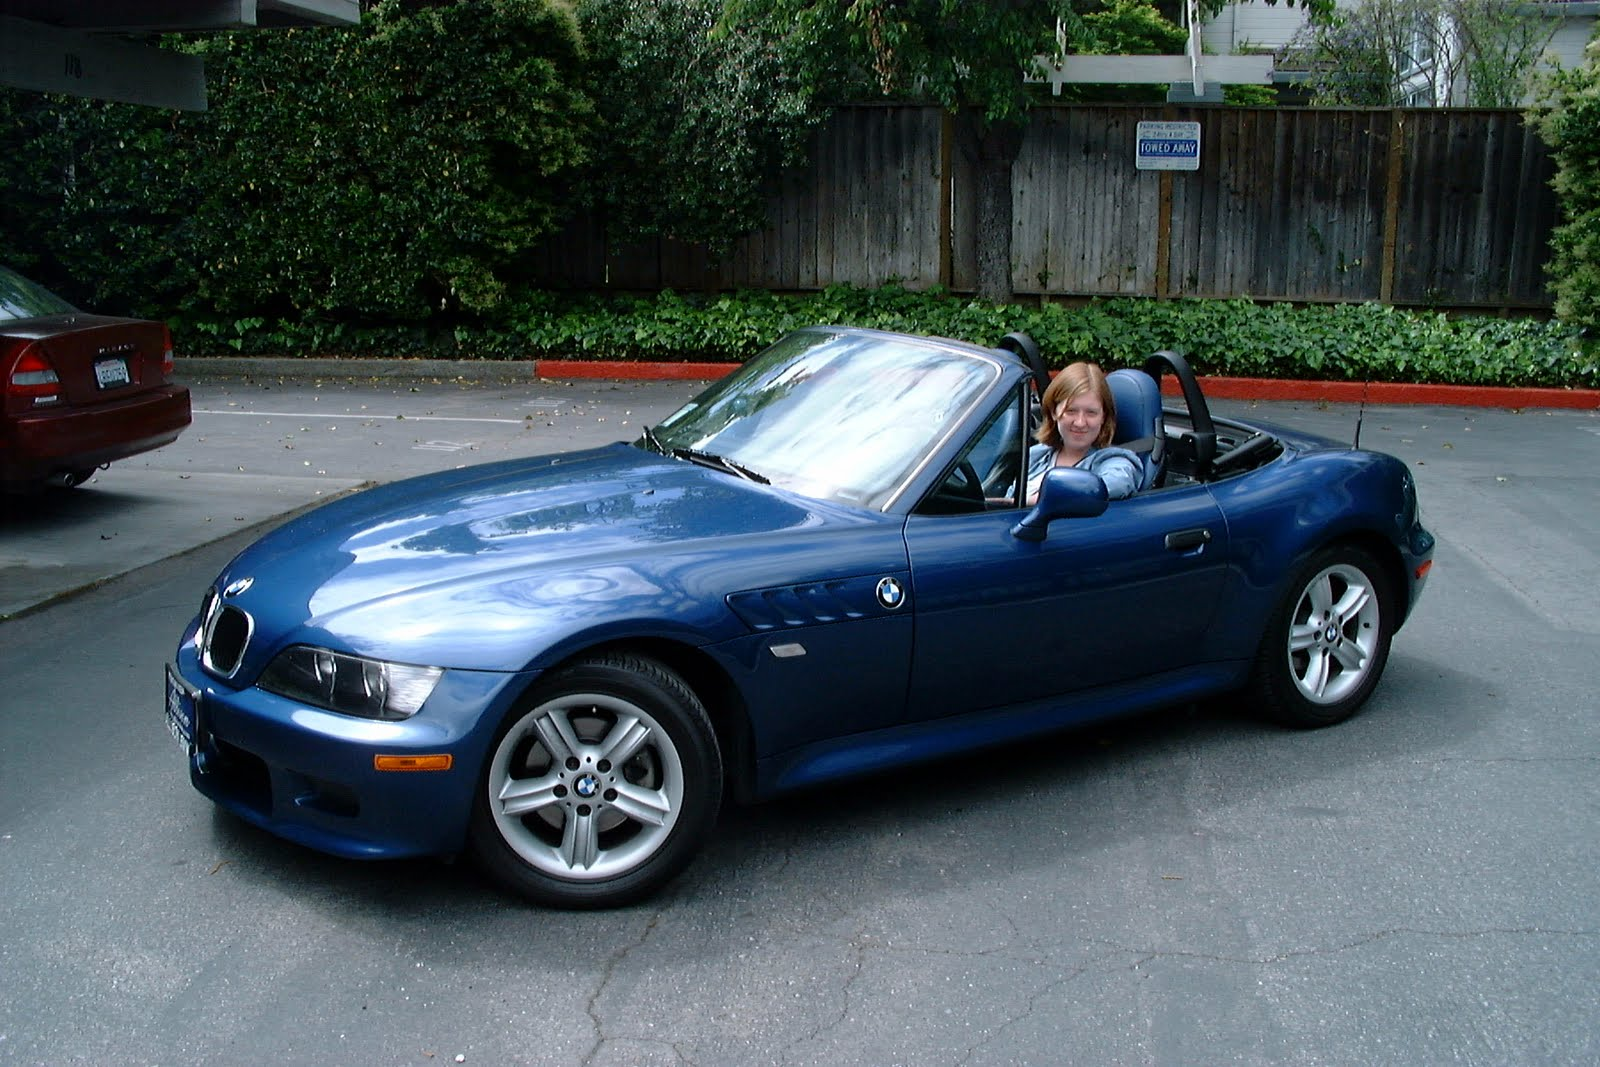 wallpaper bmw z3 coupe hd wallon. Black Bedroom Furniture Sets. Home Design Ideas